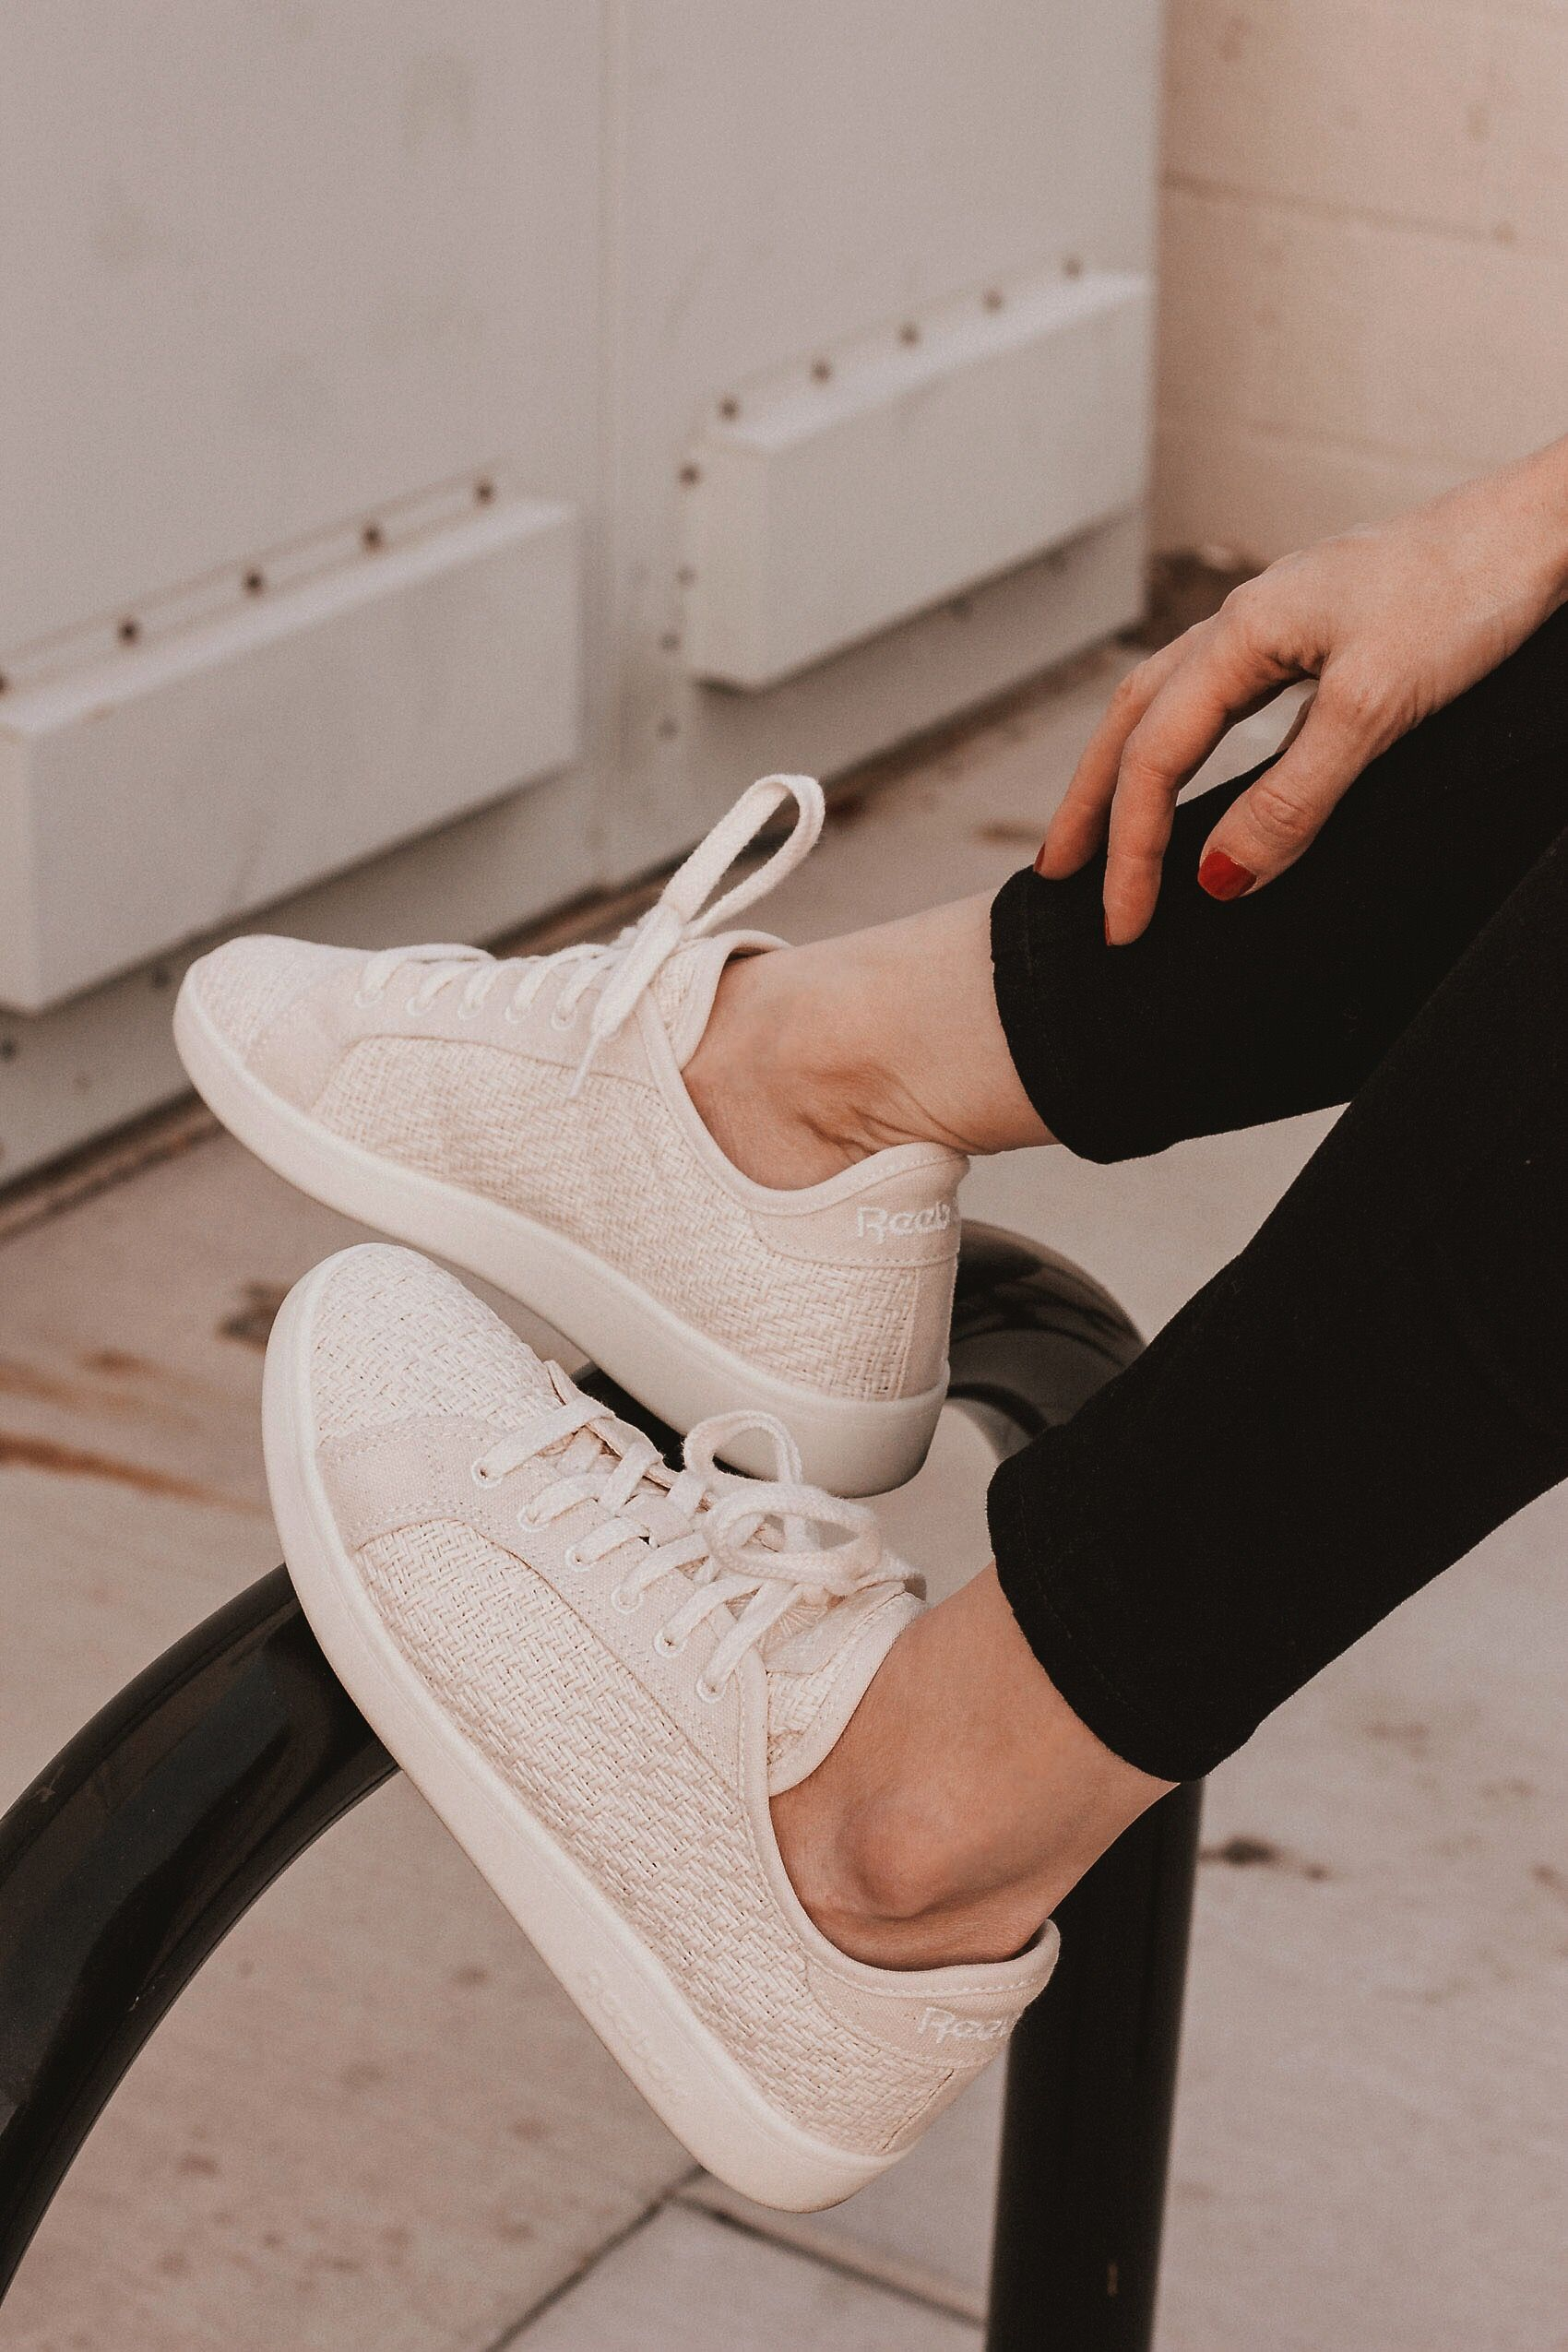 b5a9a899486  ad Sustainable and Eco Friendly Sneakers from Reebok made out of cotton  and corn!  CottonAndCorn  IC